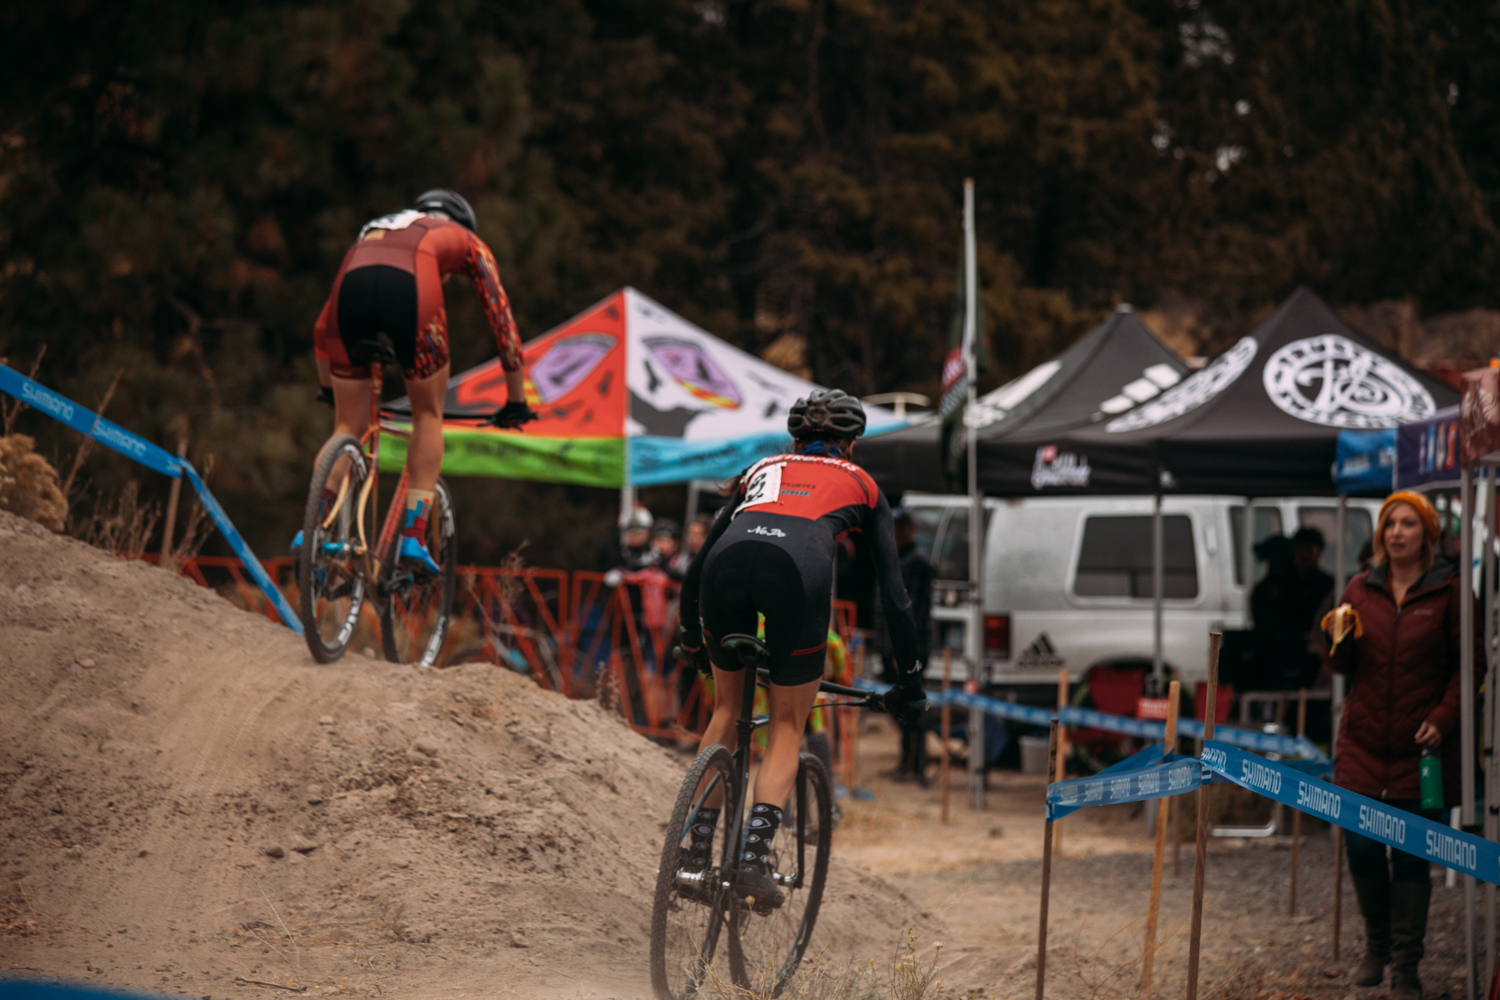 Cyclocross18_CCCX-Bend-Day1-15-fransencomesalive-2.jpg